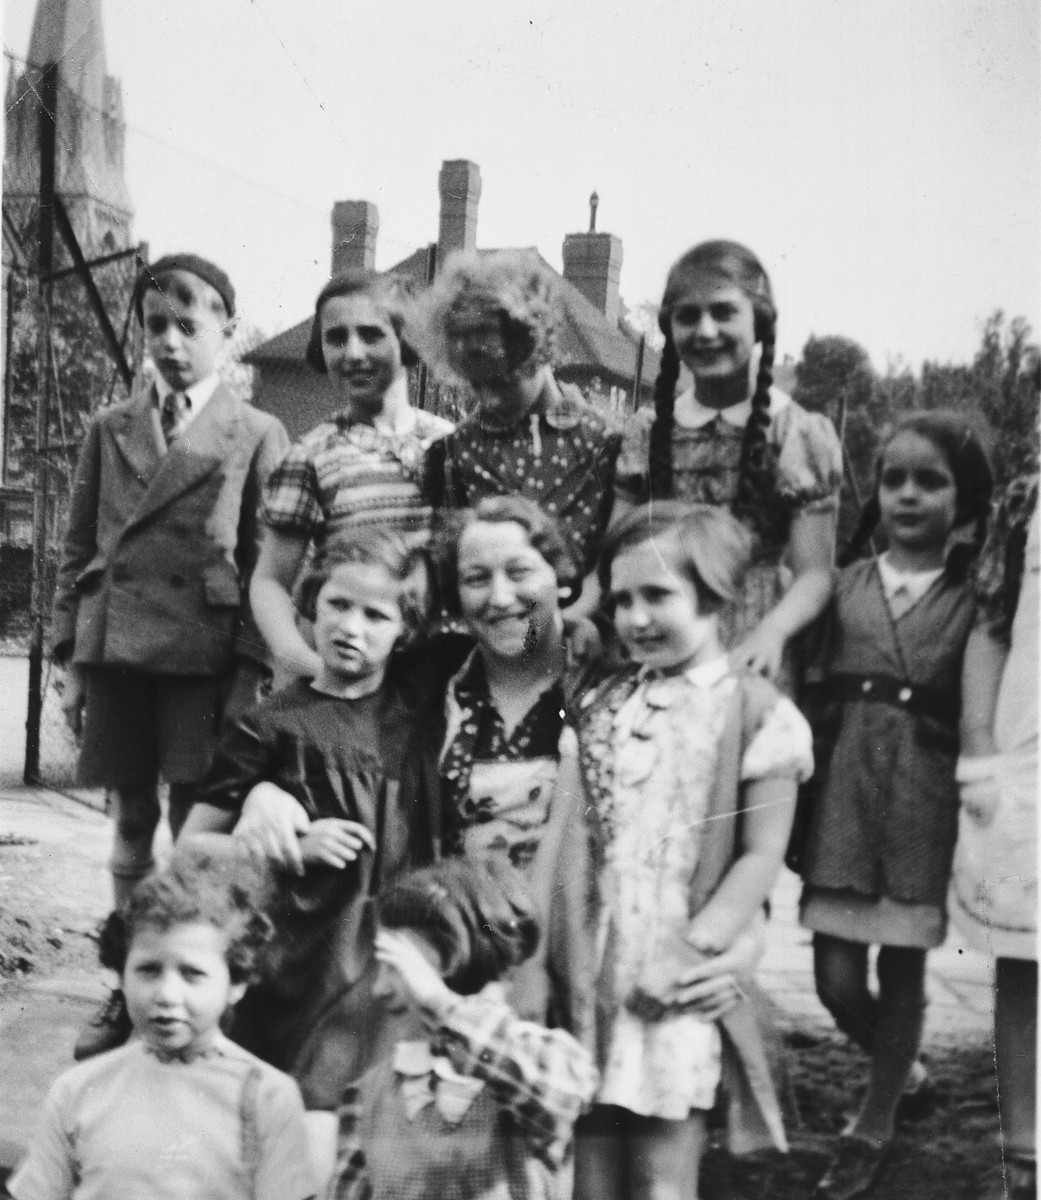 Group portrait of girls in from the 5th Avenue Hostel who came to England on a Kindertransport.  Henni Zajac is pictured standing on the left in the second row.  Pictured on the top row left is possibly Fred Gottlieb and on the top row right is possibly his sister, Miriam Gottlieb.